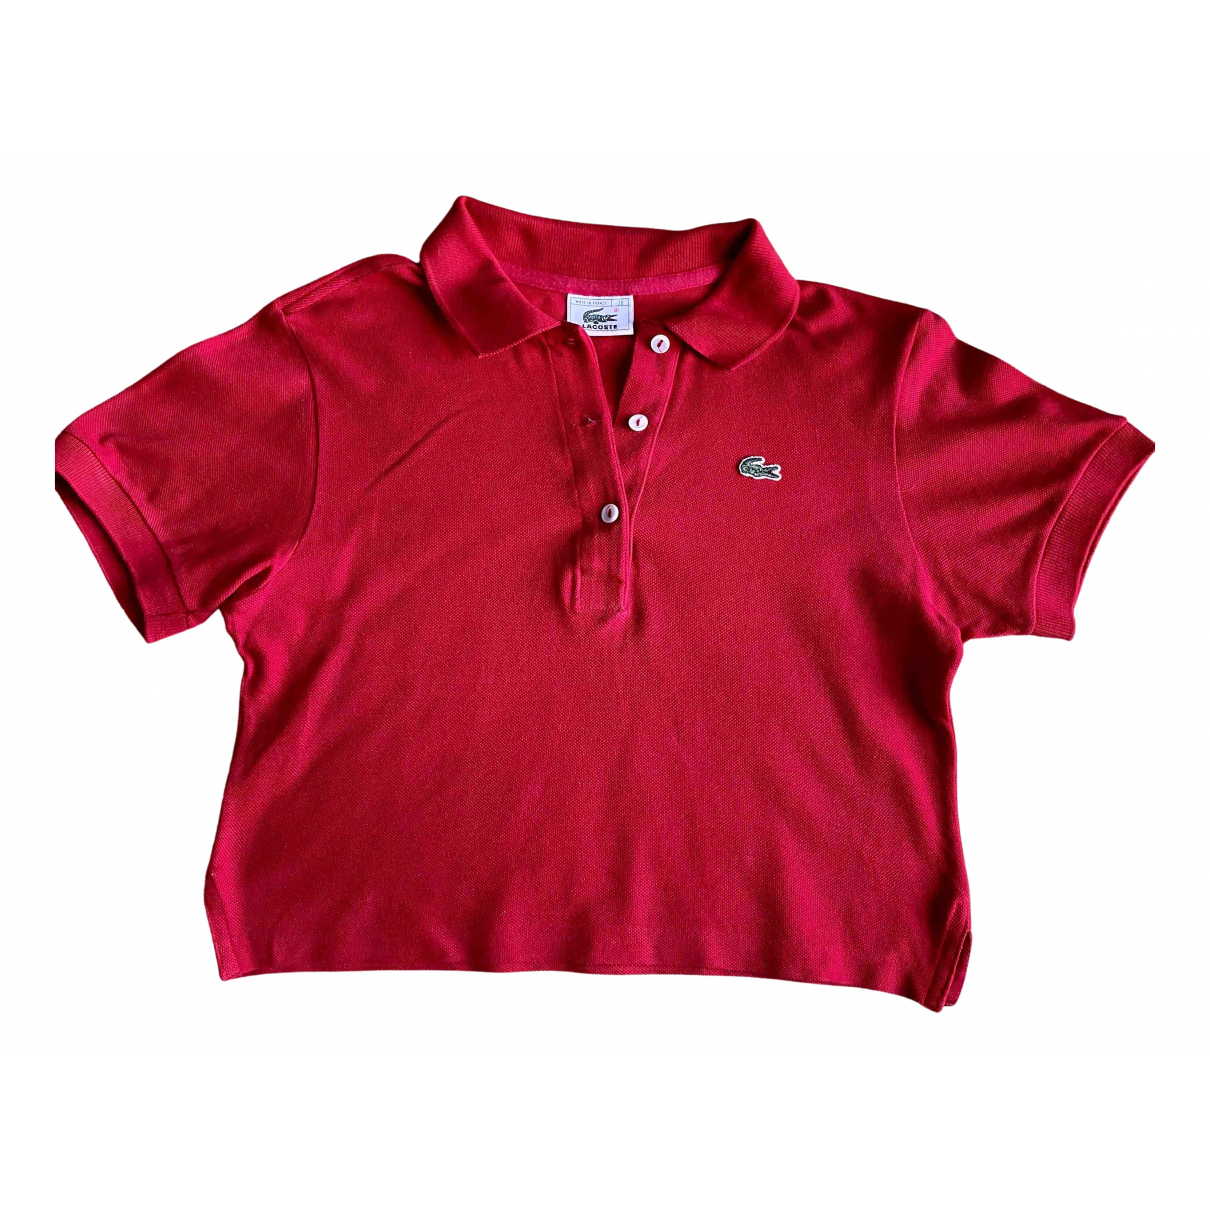 Lacoste \N Red Cotton  top for Women 38 FR